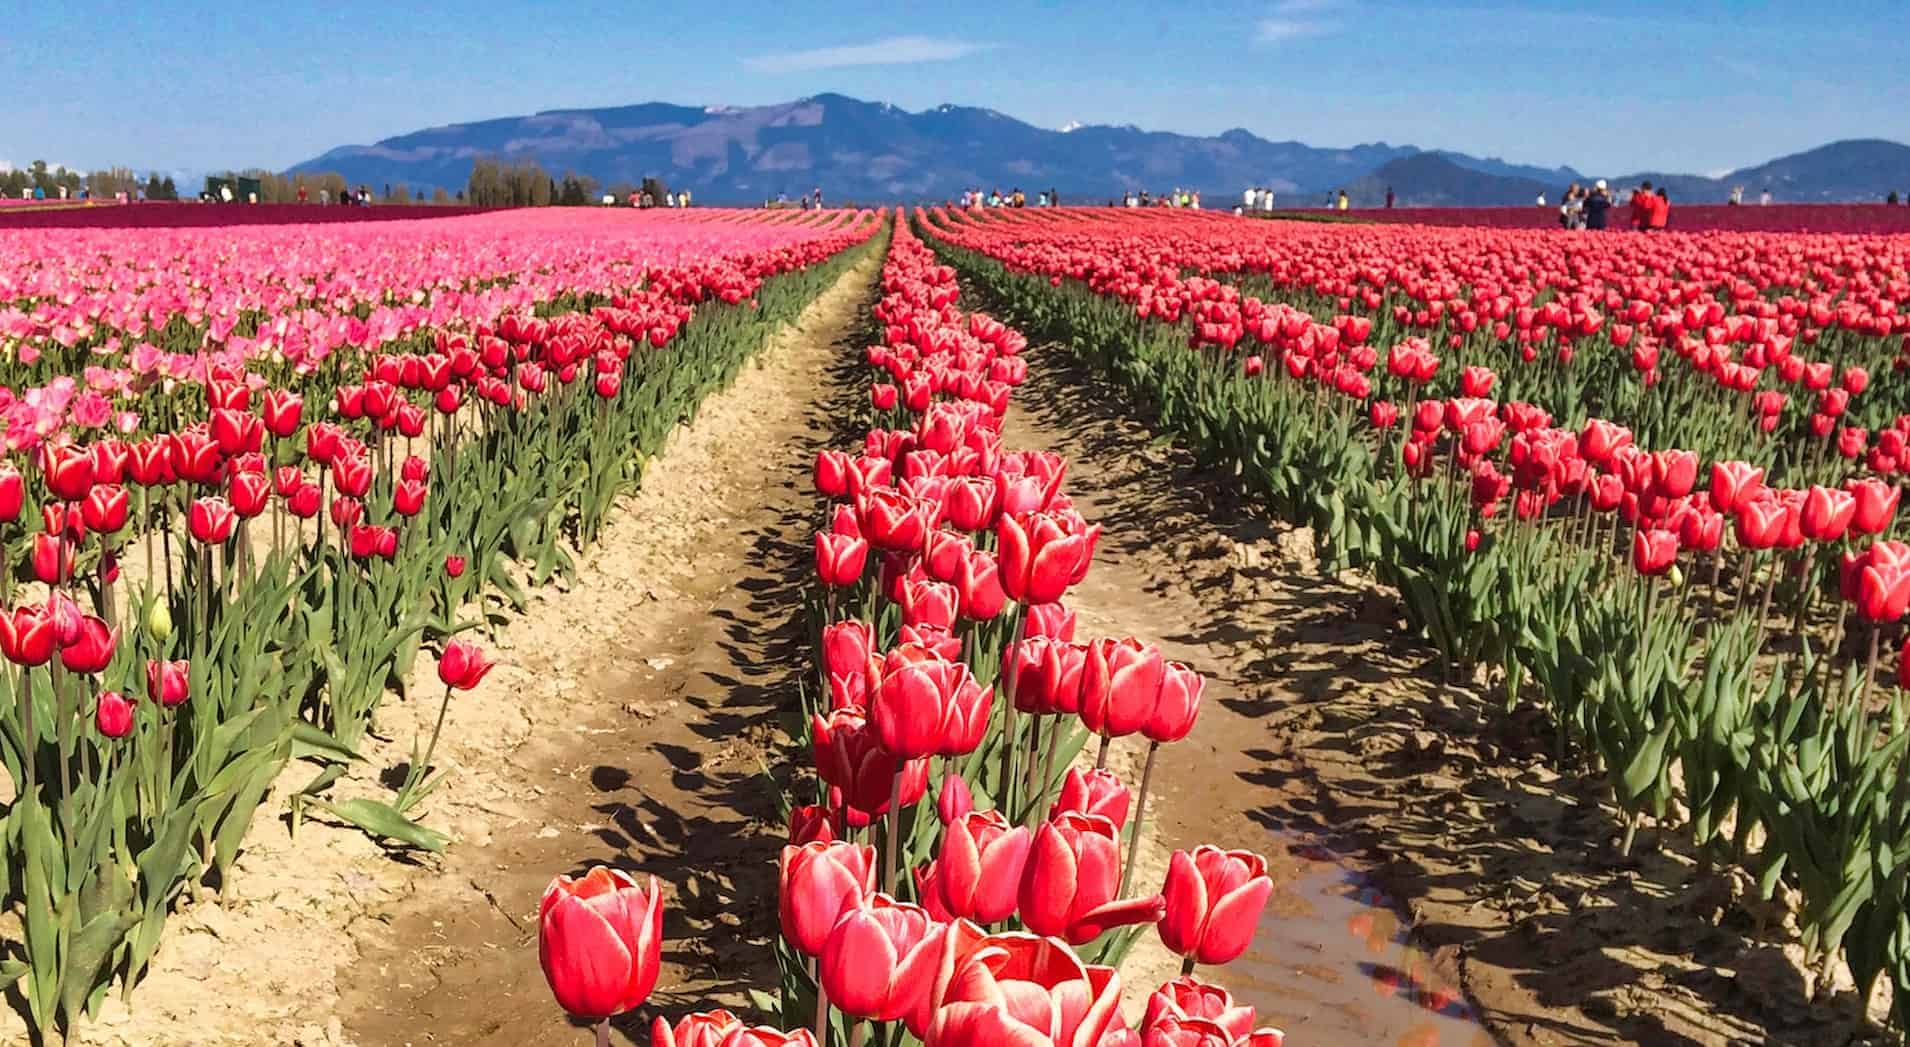 How to Visit the Skagit Valley Tulip Festival in 2020